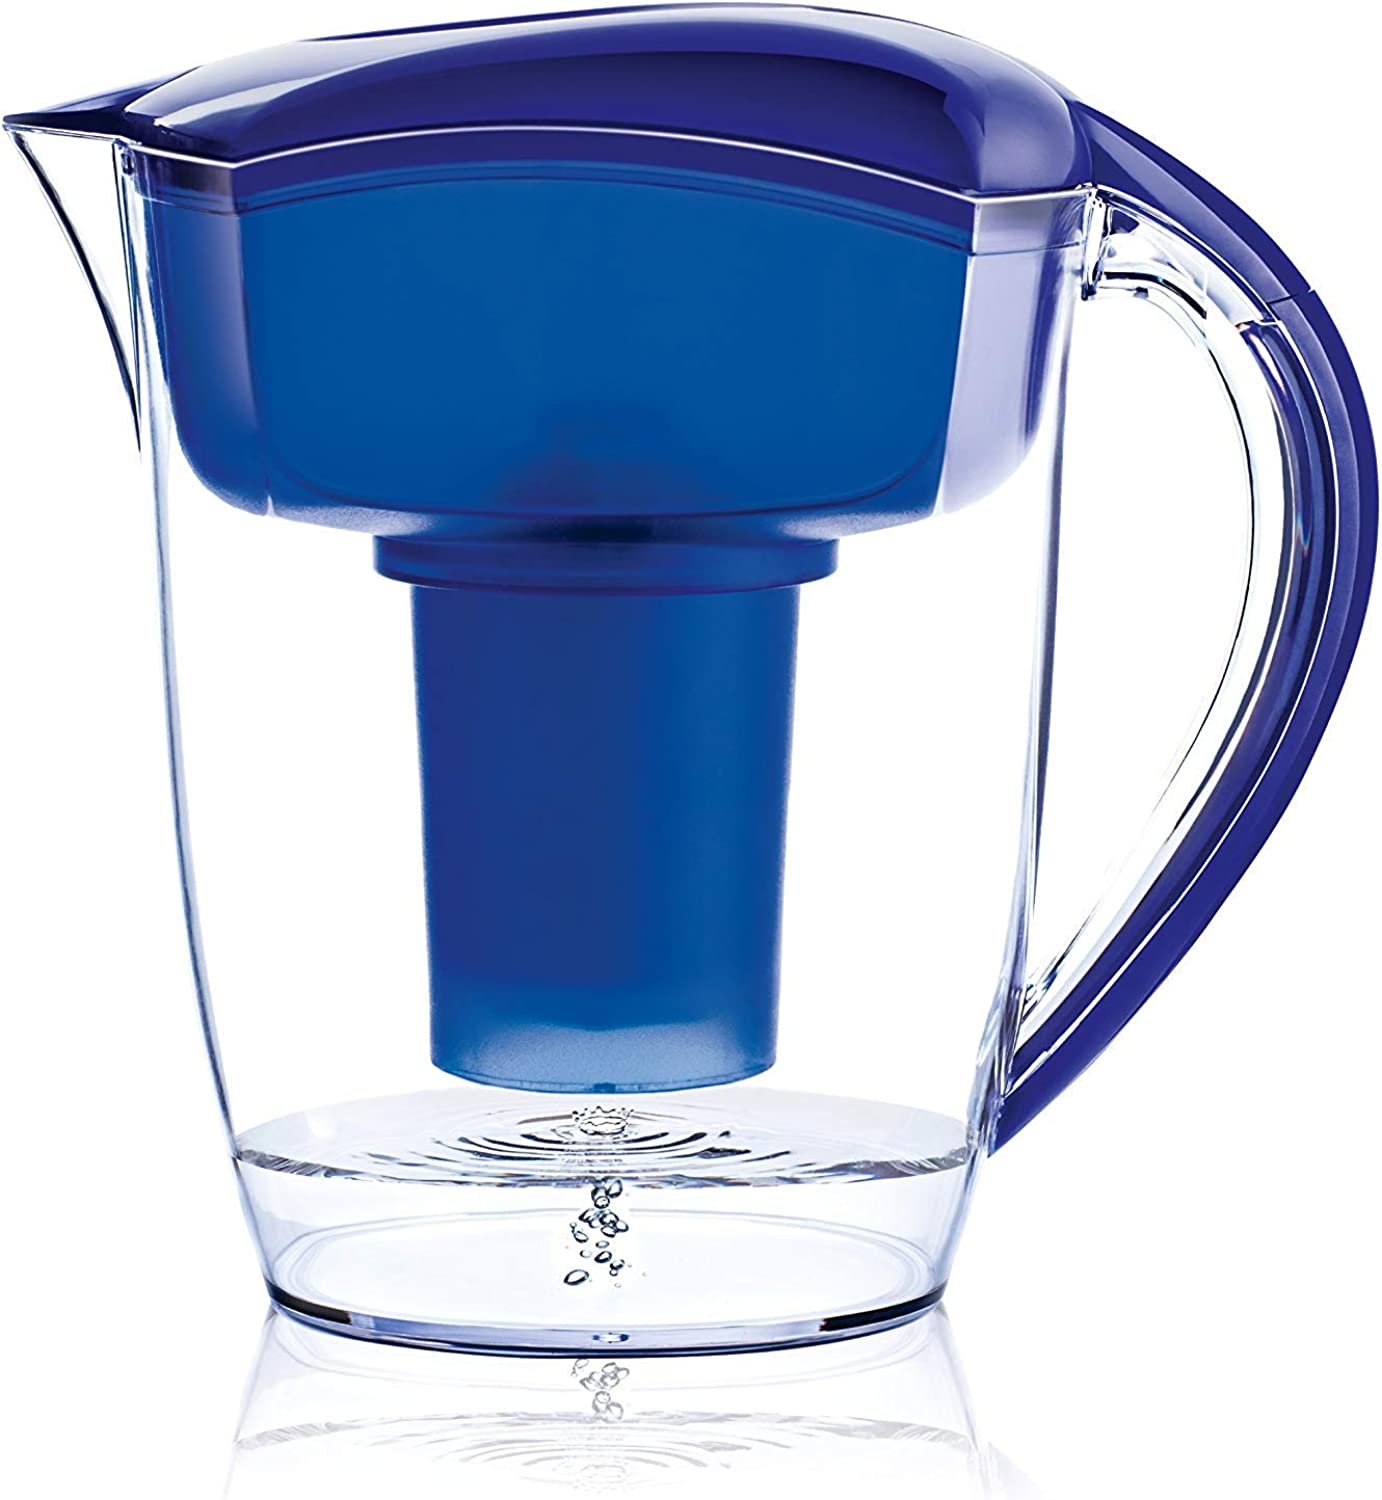 Santevia Water Systems Alkaline Water Pitcher (bluee)